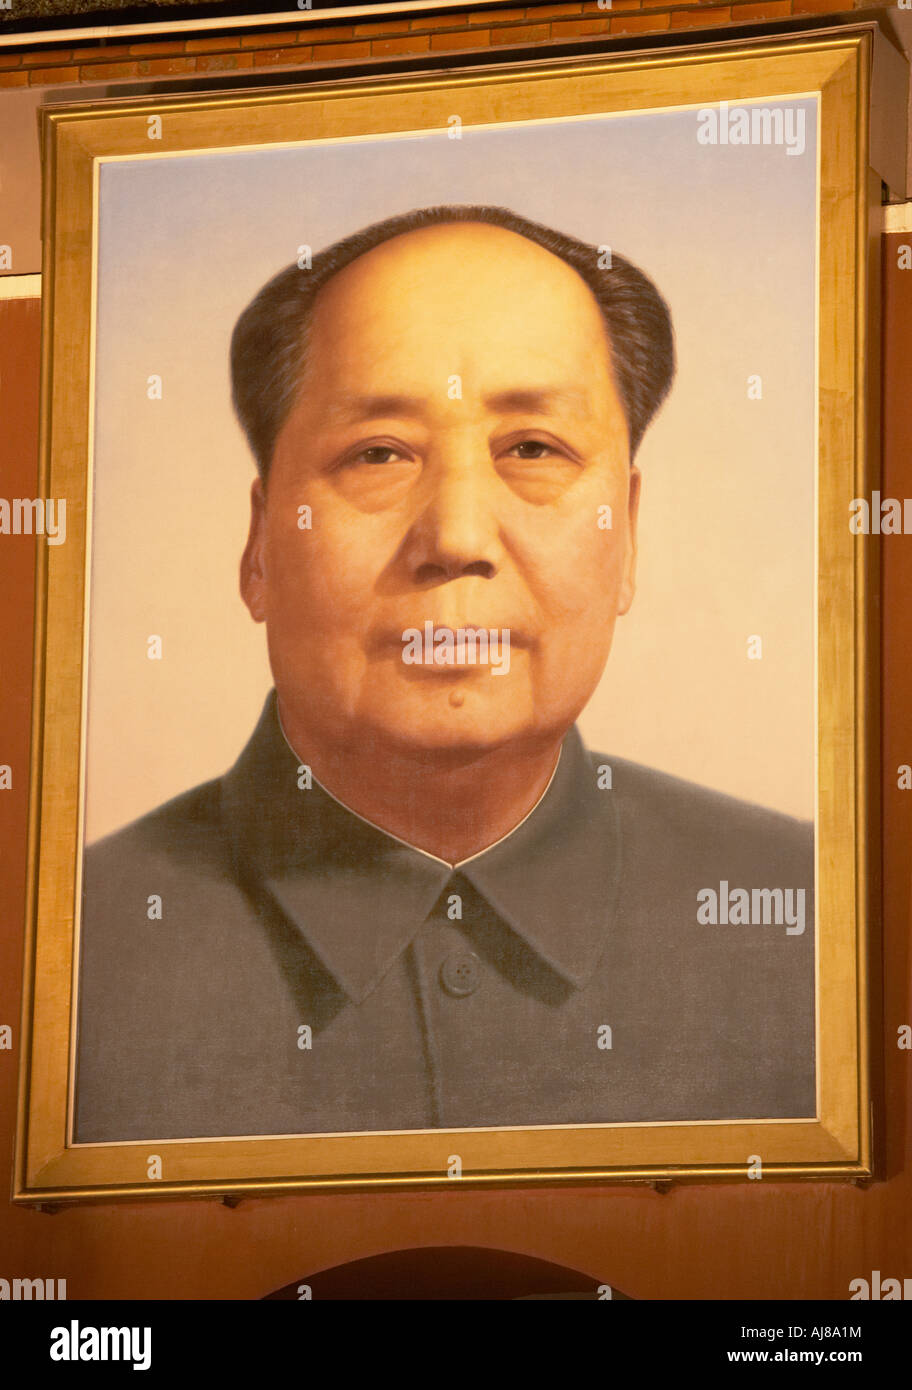 Illuminated Gate of Heavenly peace, Chairman Mao portrait - Stock Image